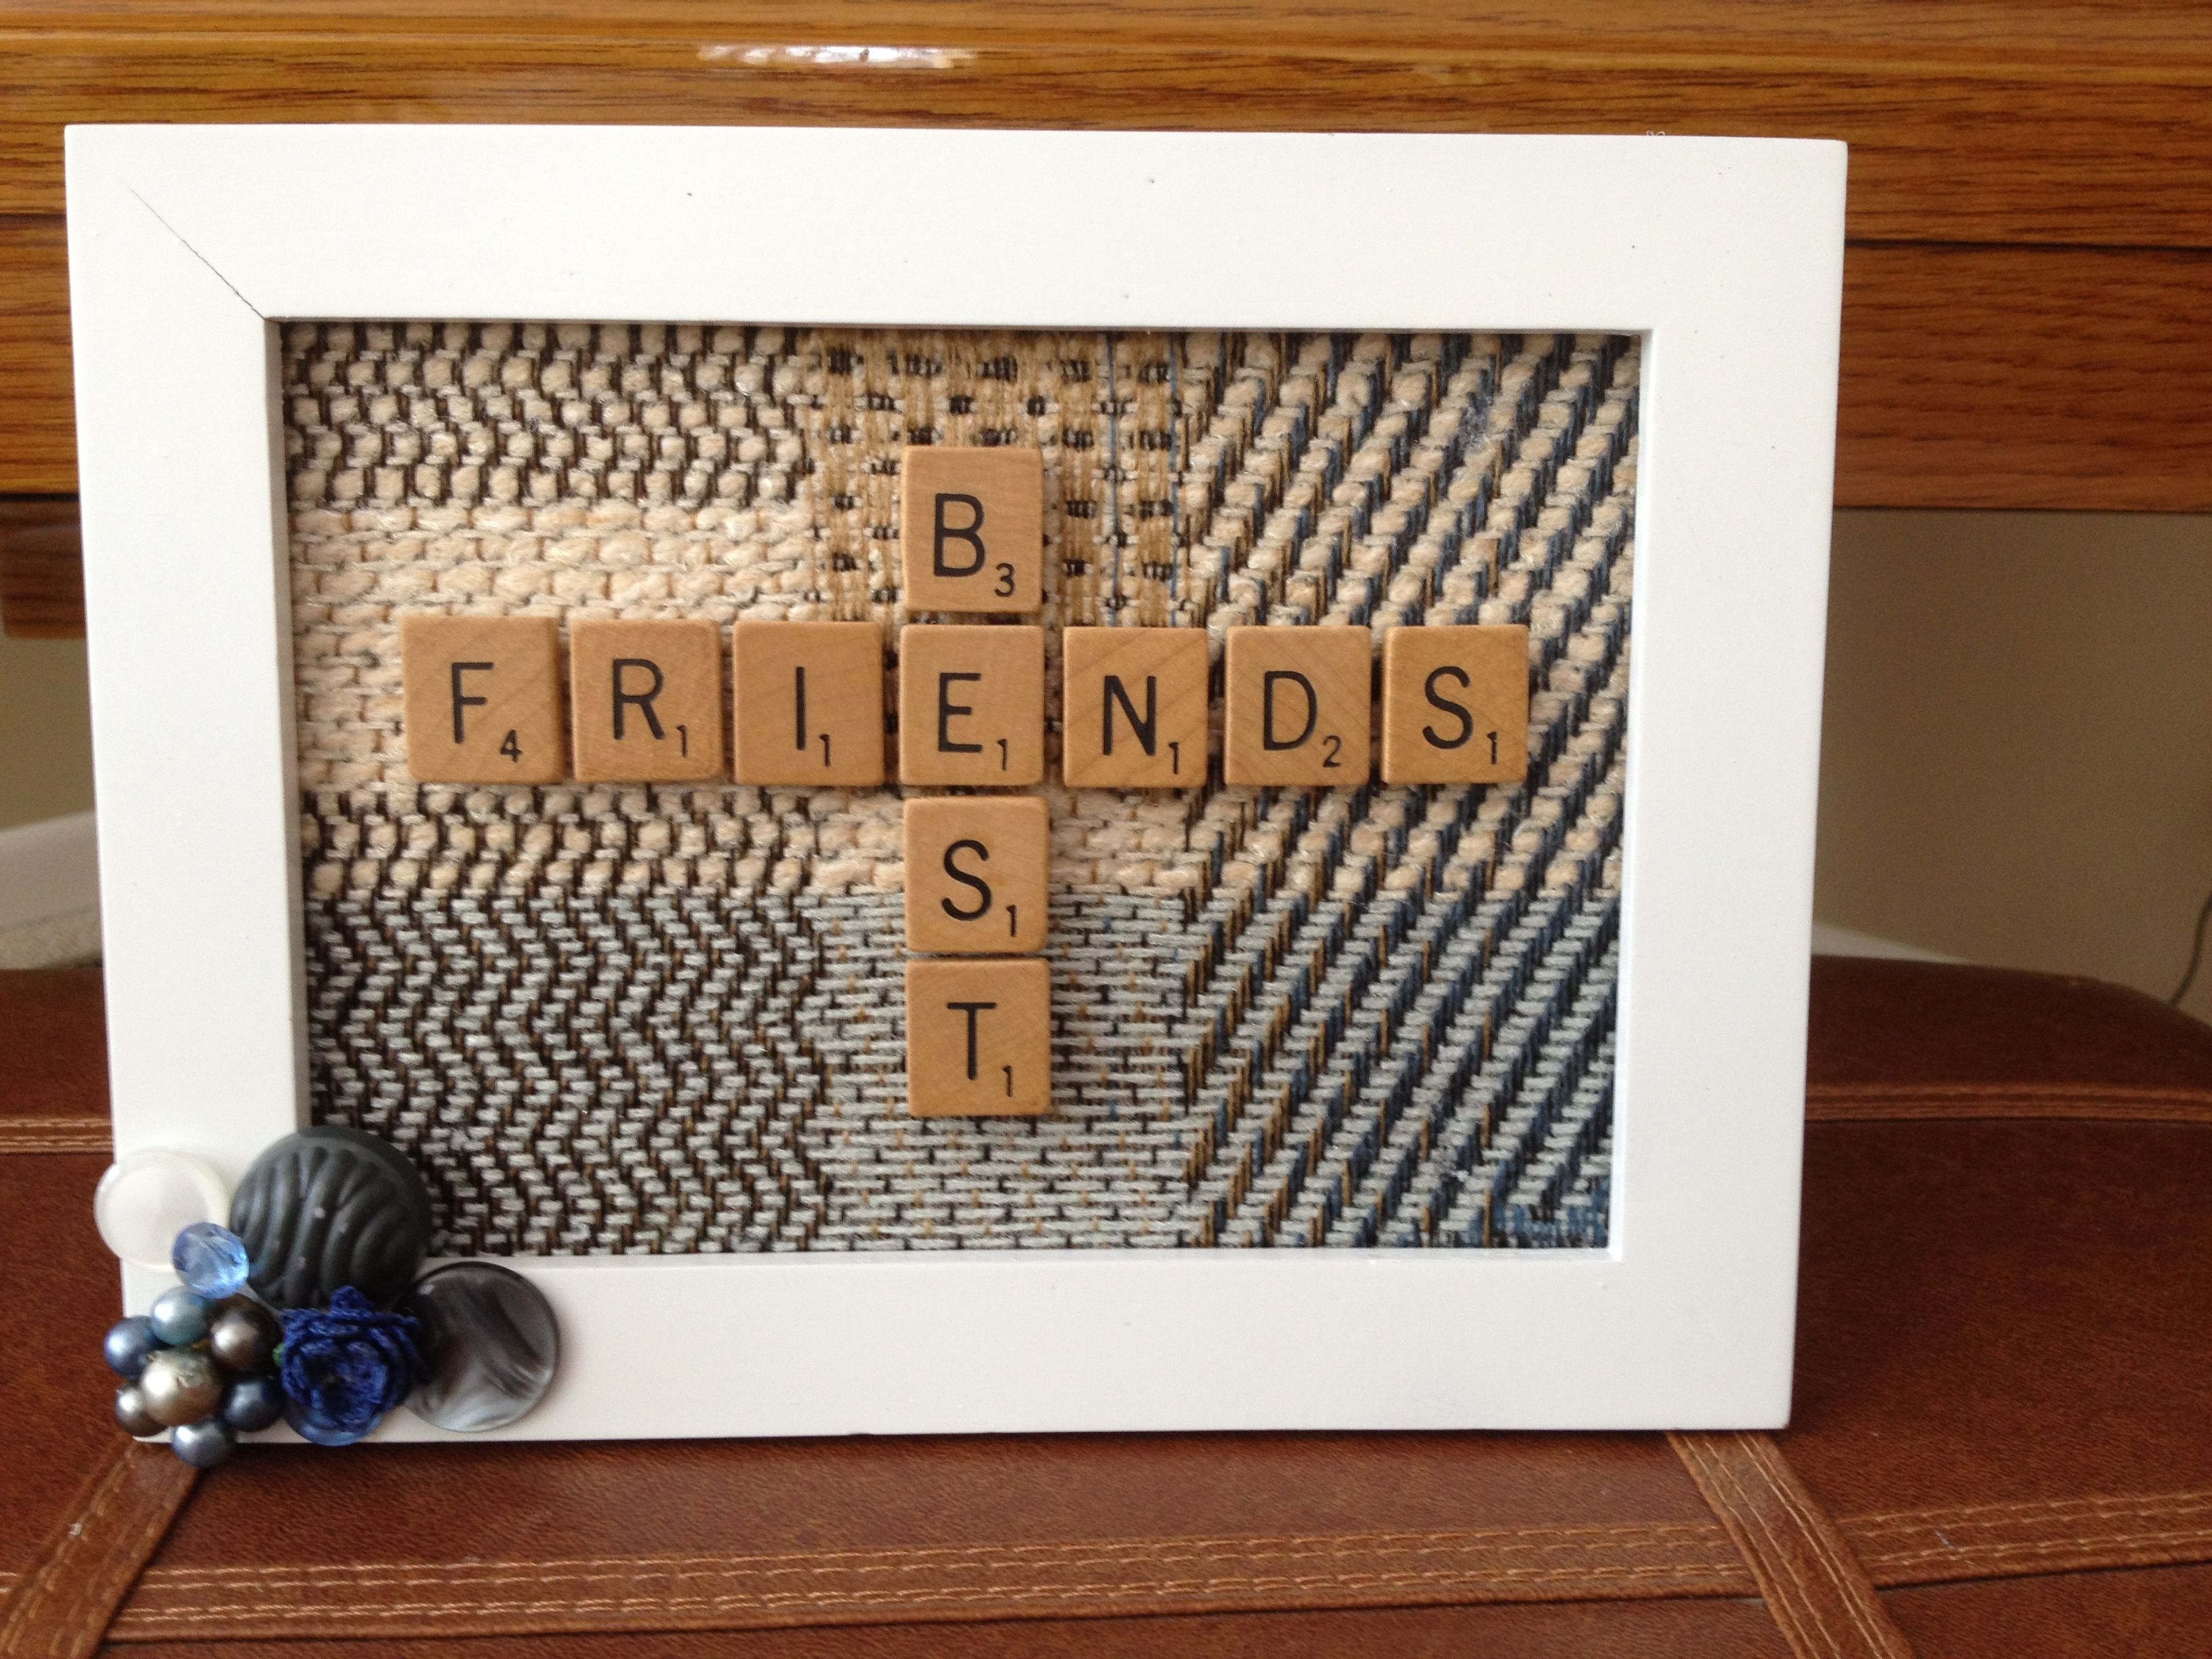 Scrabble Art Attach Material To Cardboard Backing Of Picture Frame